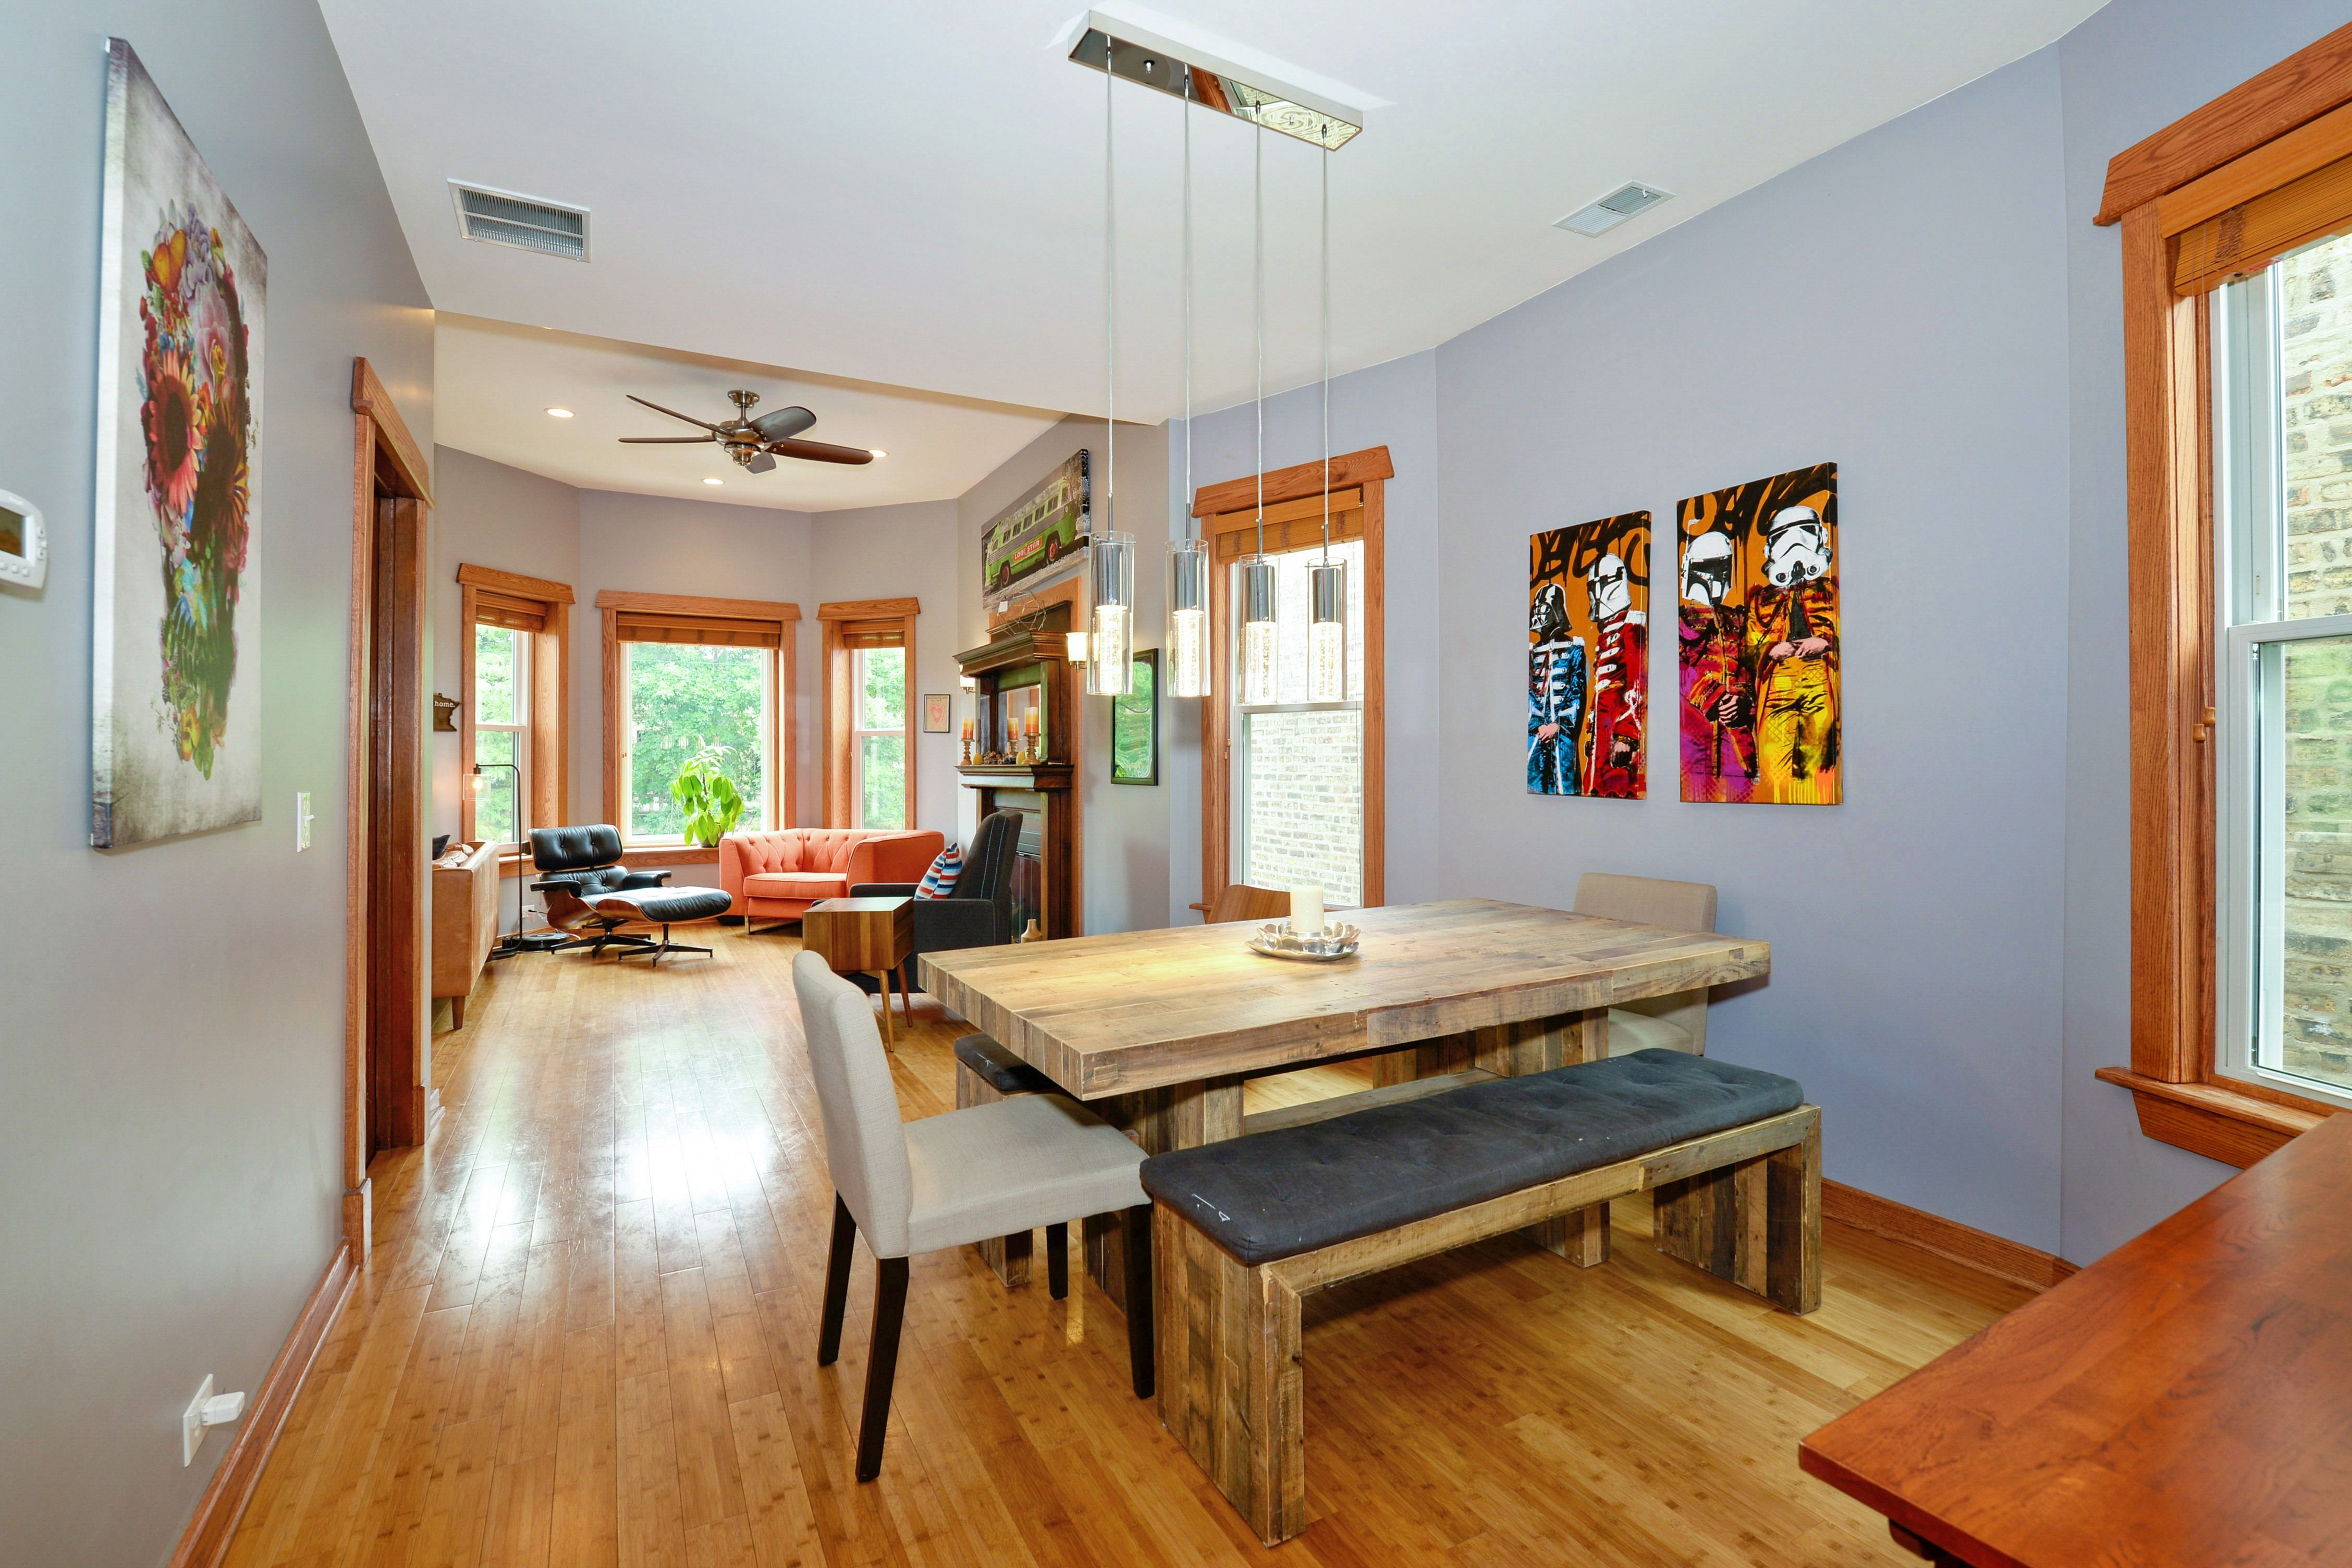 This 3 bedroom apartment in Logan Square has vintage ...